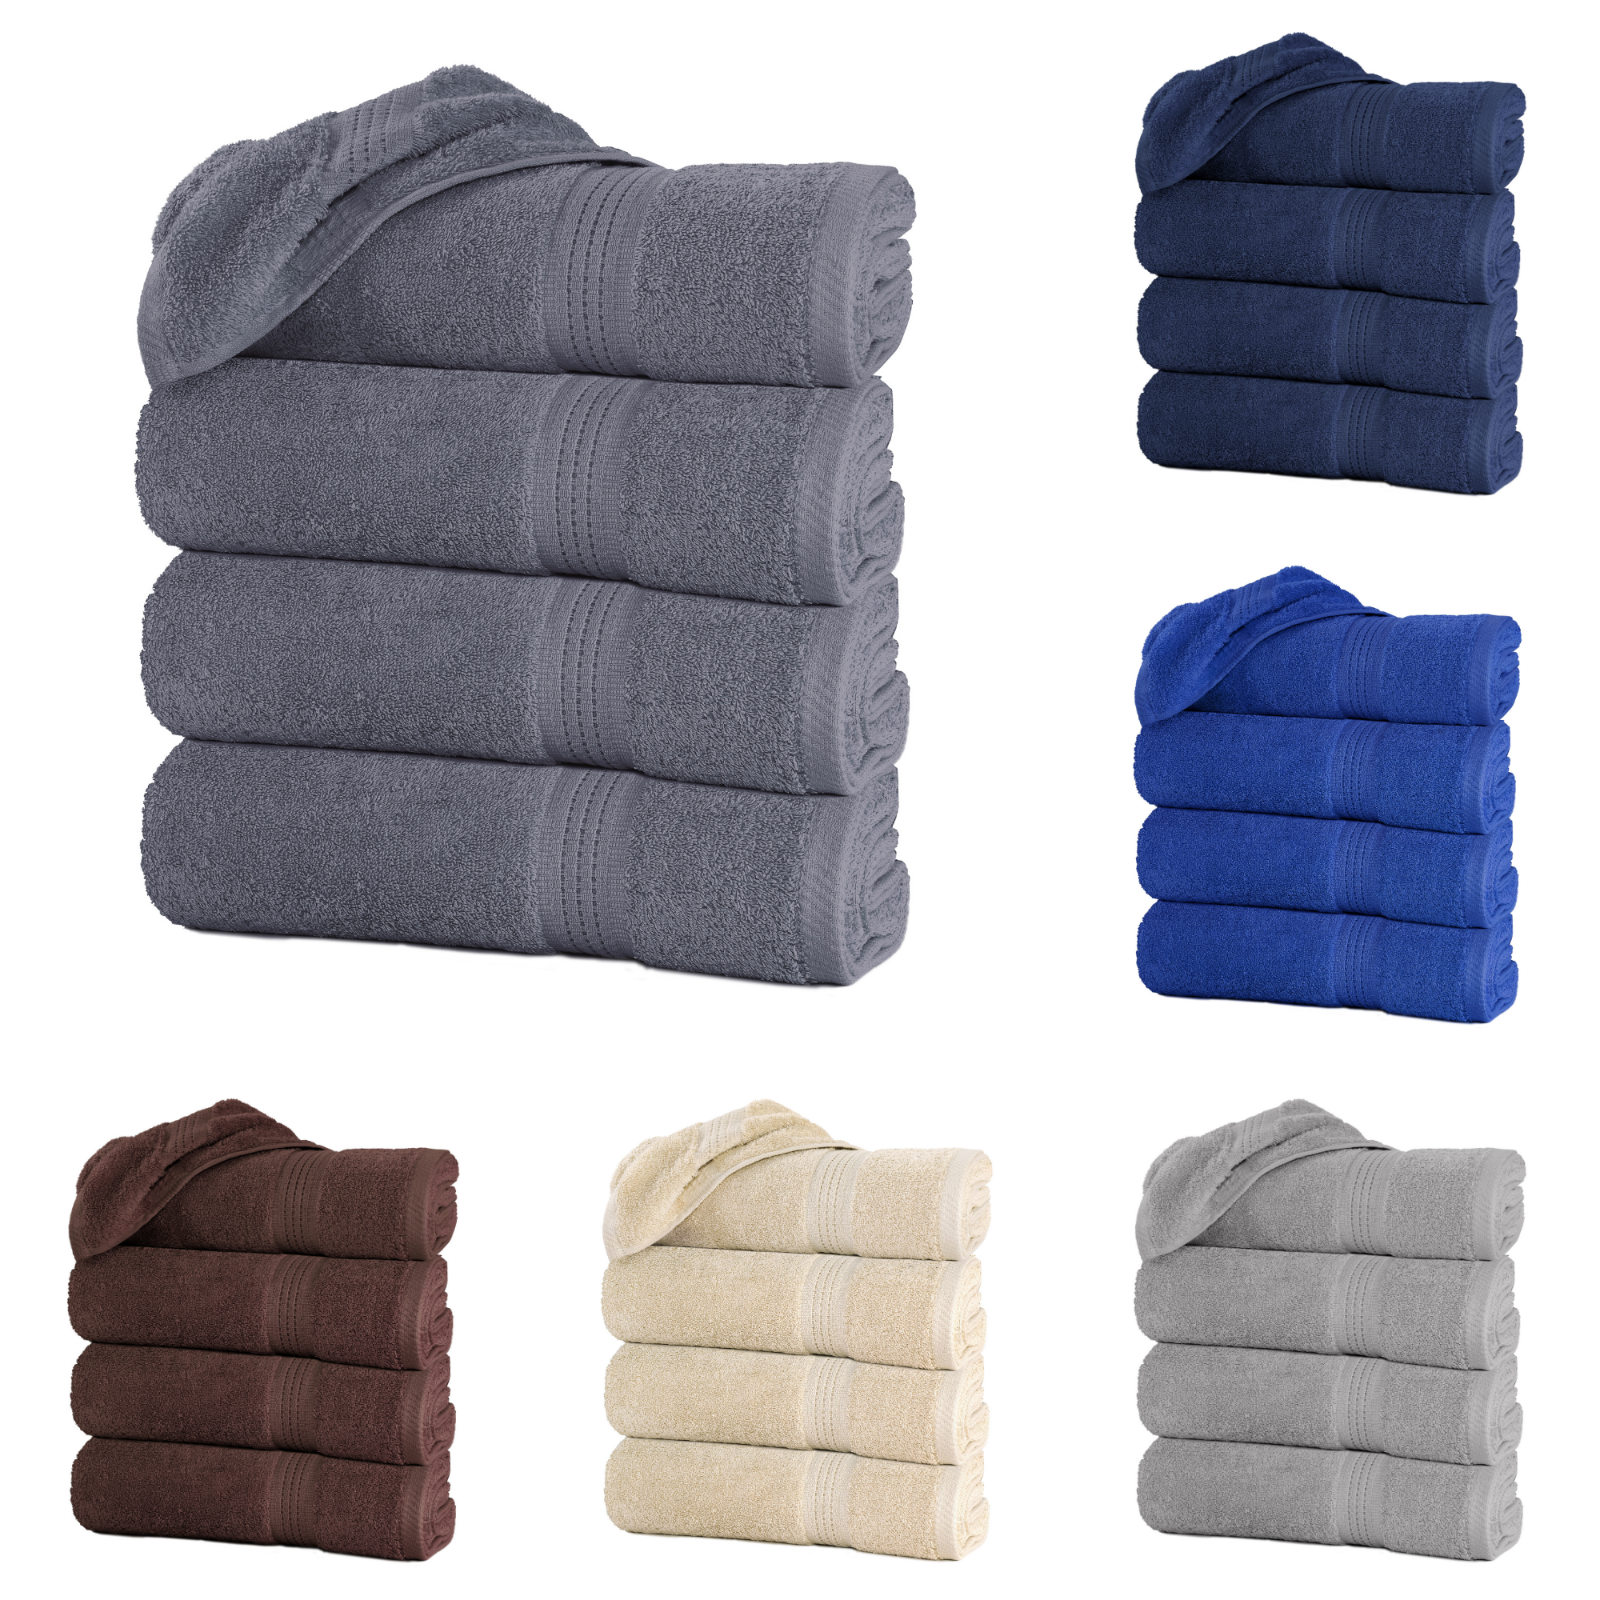 Large Bath Towel Packs Sets Sheets 100 Cotton 27x58 450 Gsm Highly Absorbent 22 99 Bath Sheets For Sales Trendin In 2020 Large Bath Towel Large Baths Bath Sheets